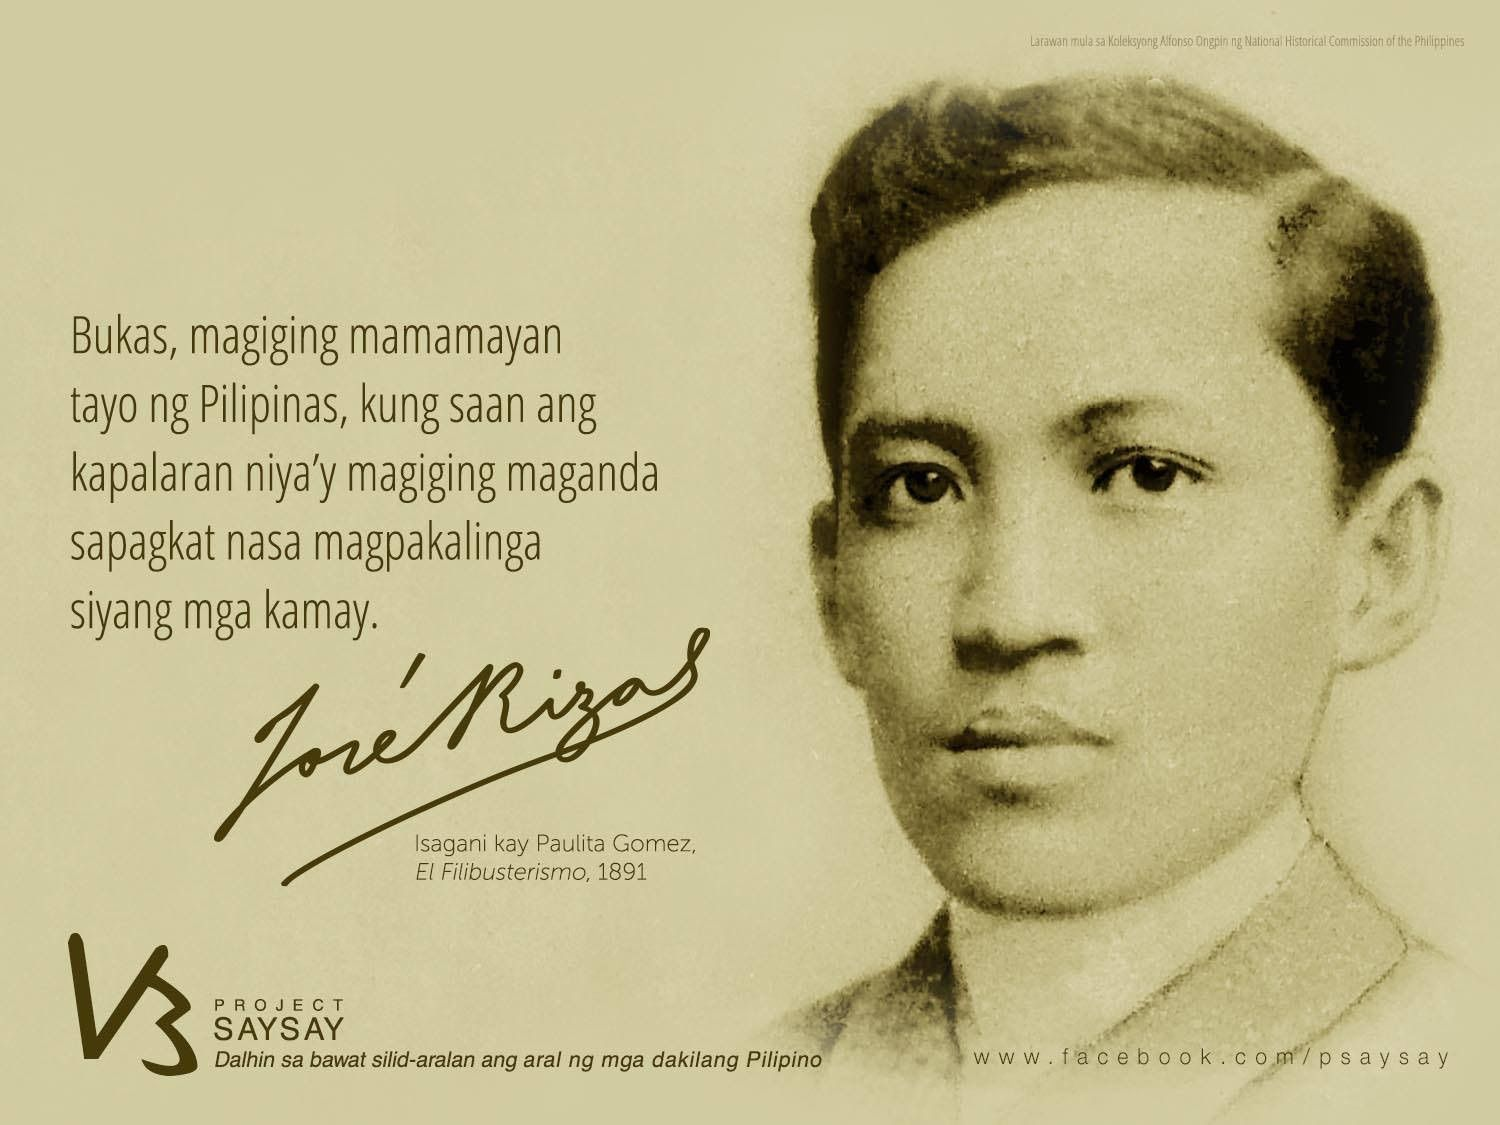 The indolence of the filipino by jose rizal